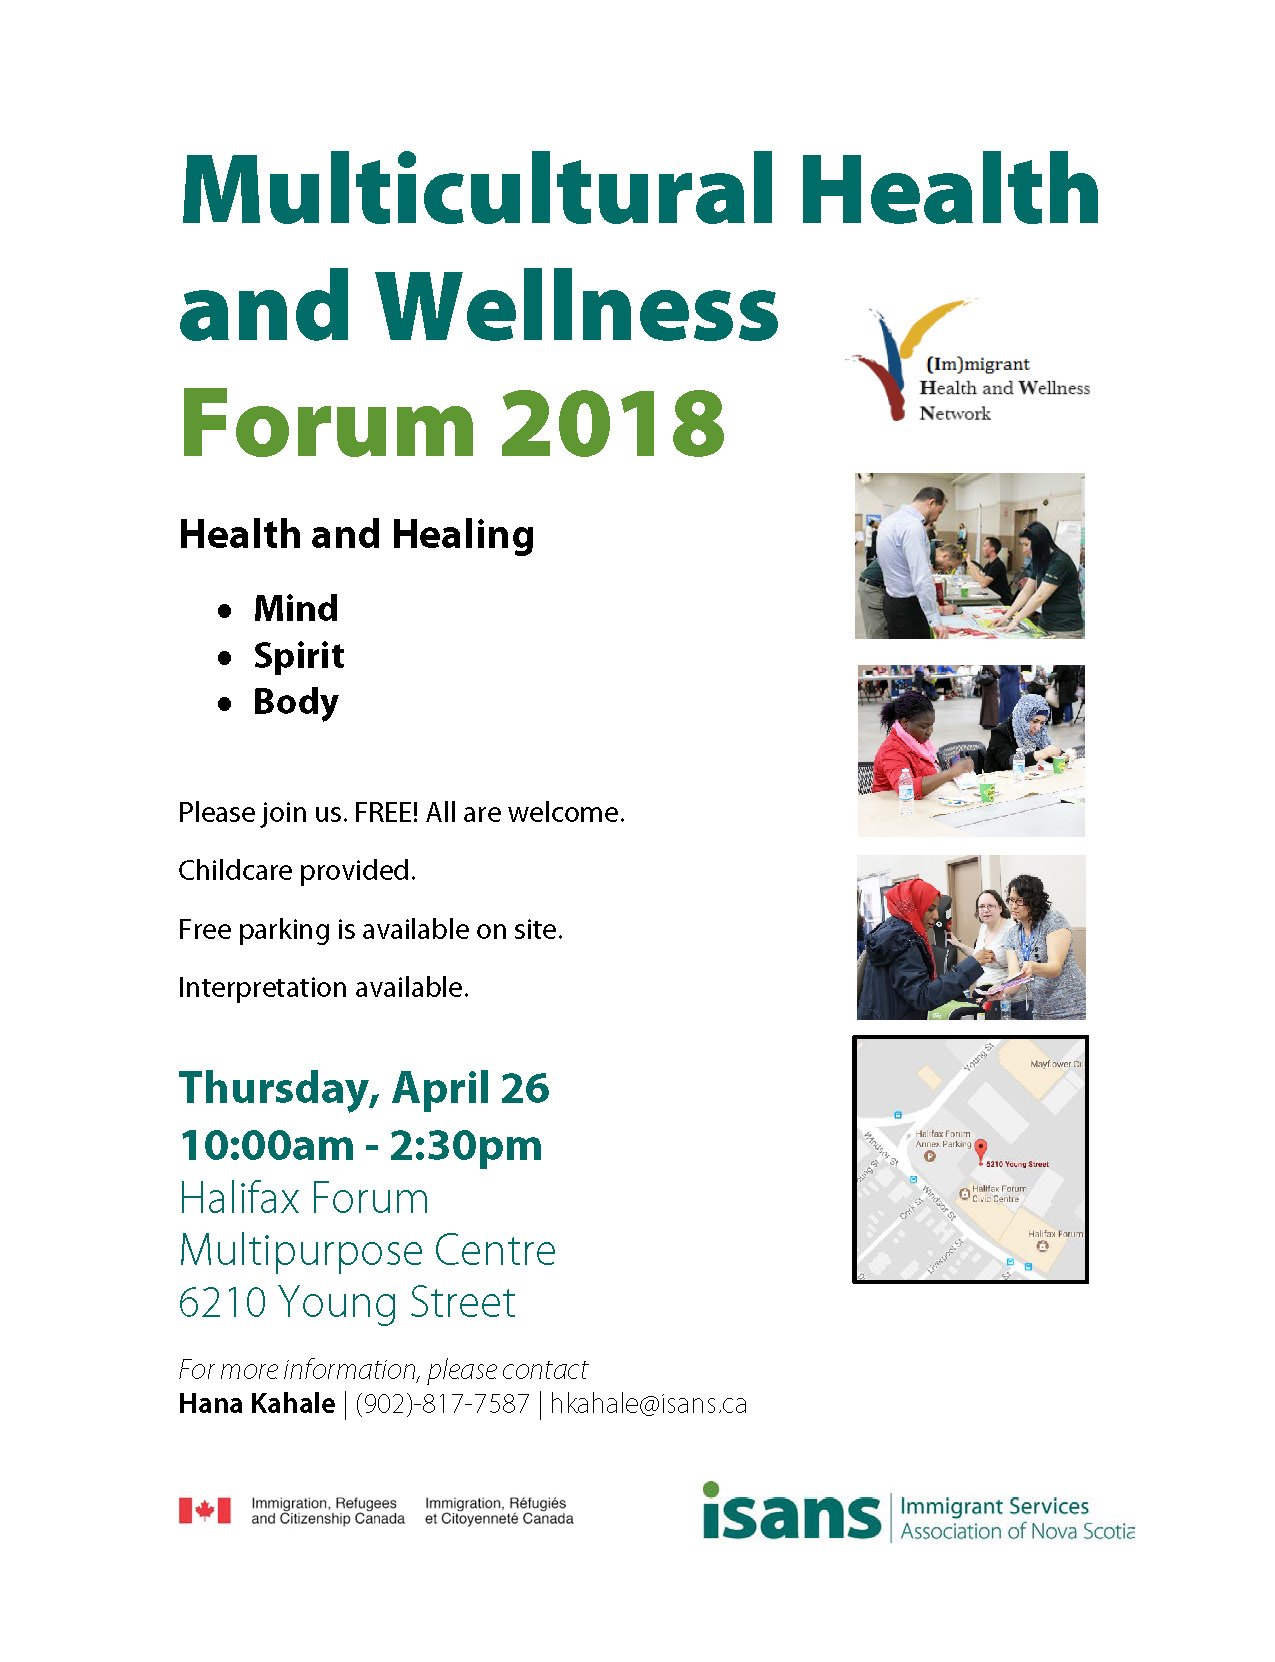 Multicultural Health and Wellness Forum | Immigrant Services